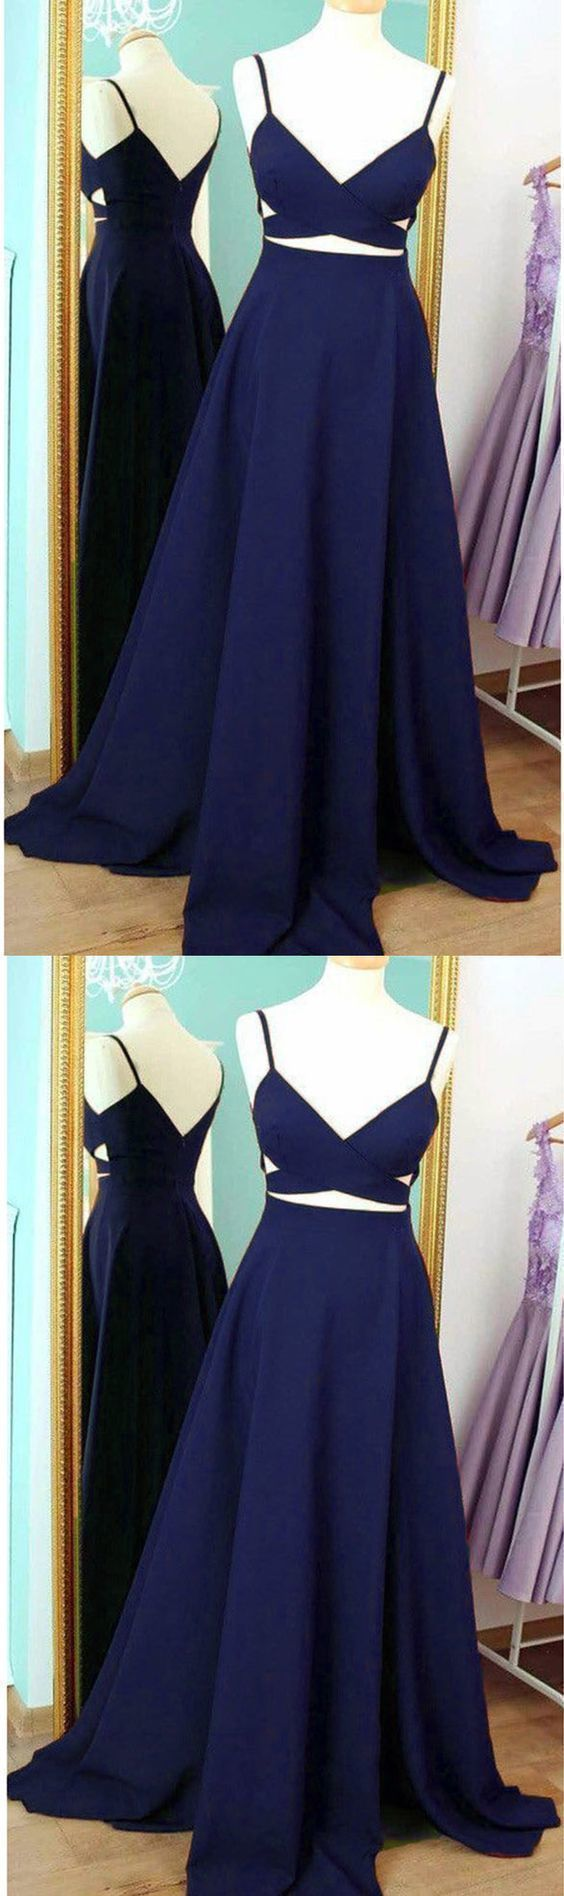 Long Spaghetti Straps Prom Dresses Formal Party Evening Gown